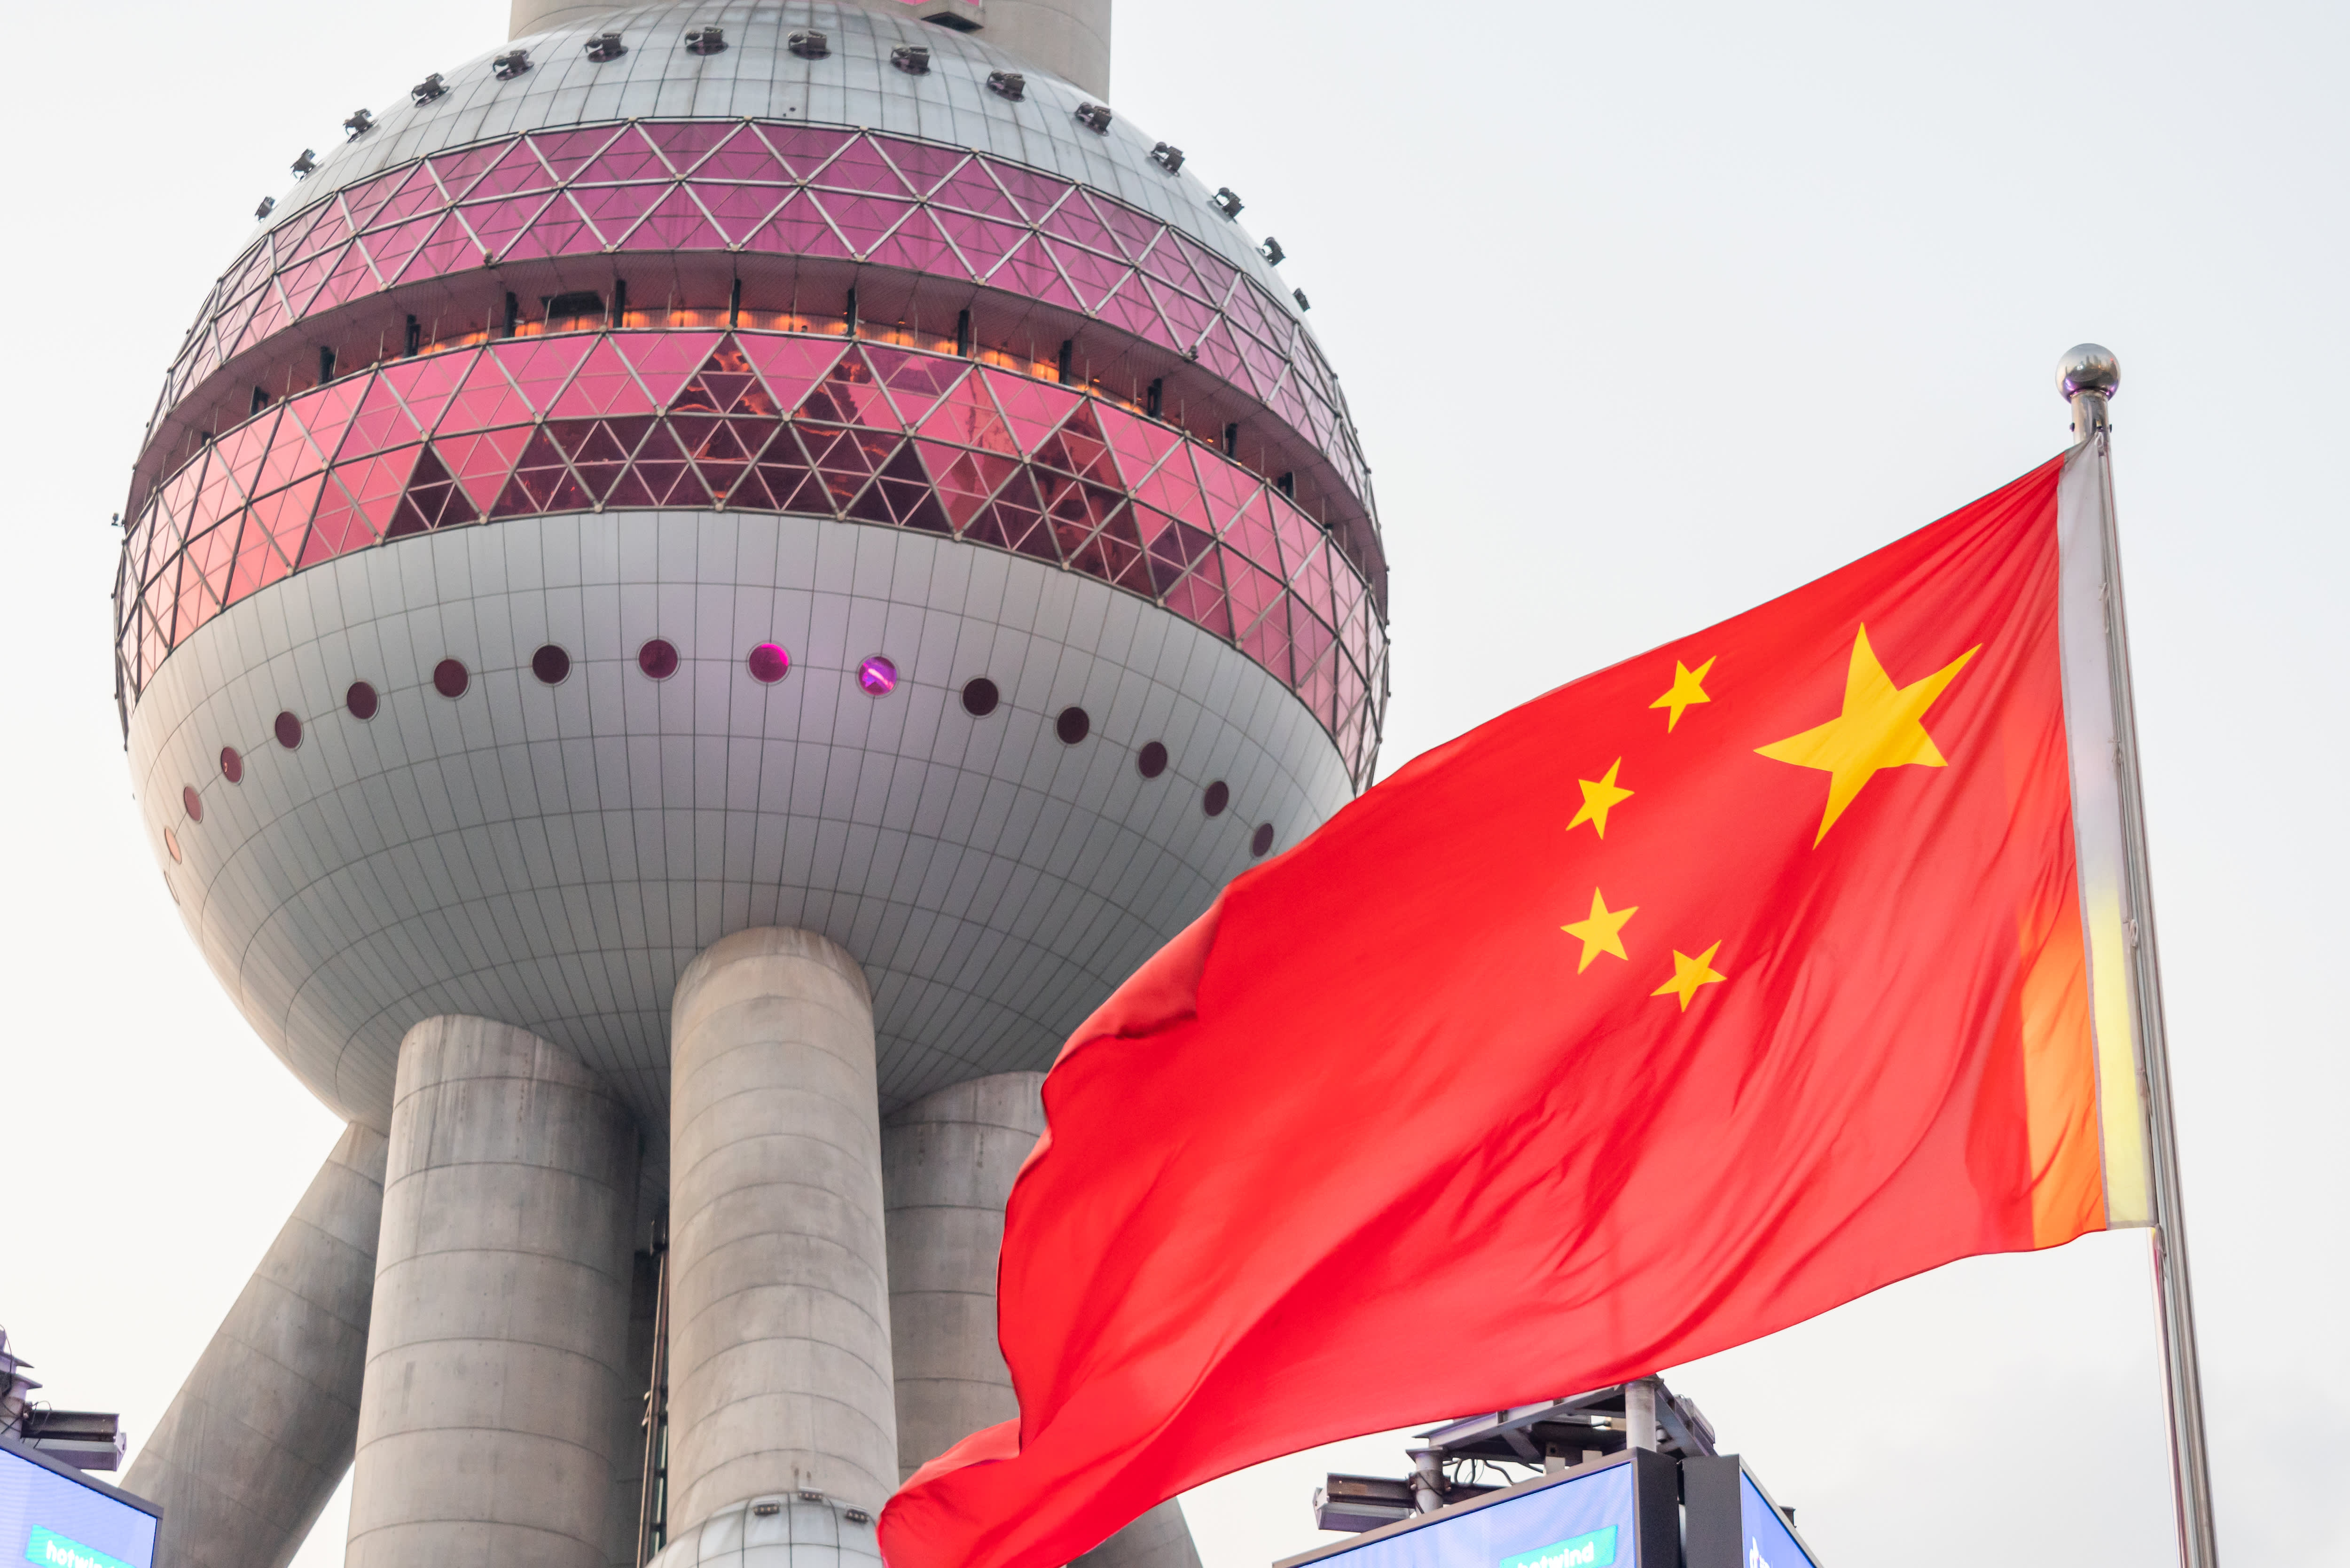 Here are 4 charts that show China's rise as a global economic superpower